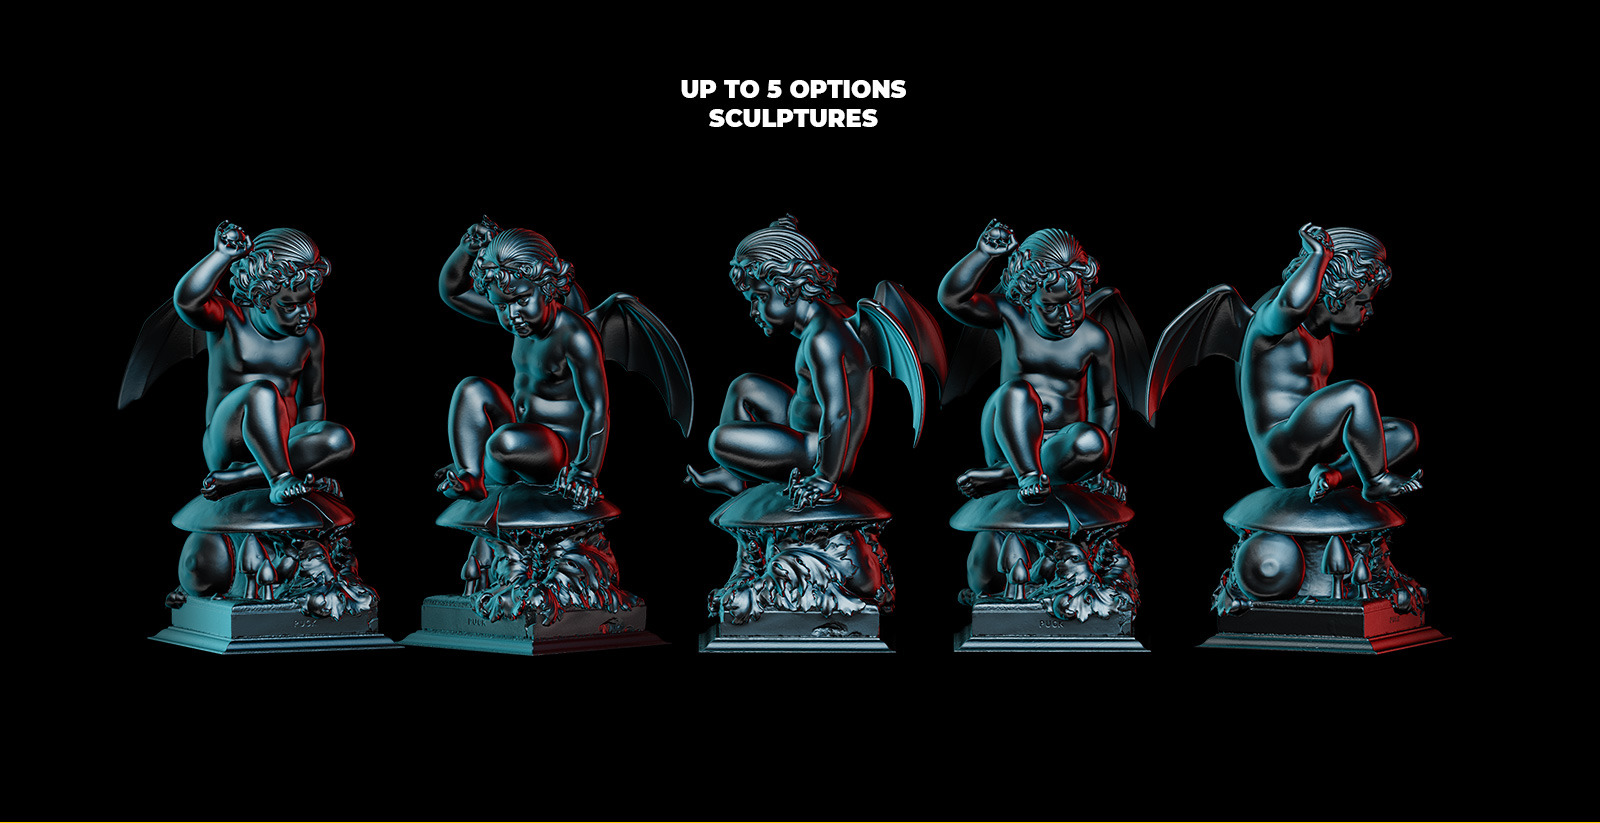 Collection of 343 Sculptures in black style # 08 for branding and design of your product